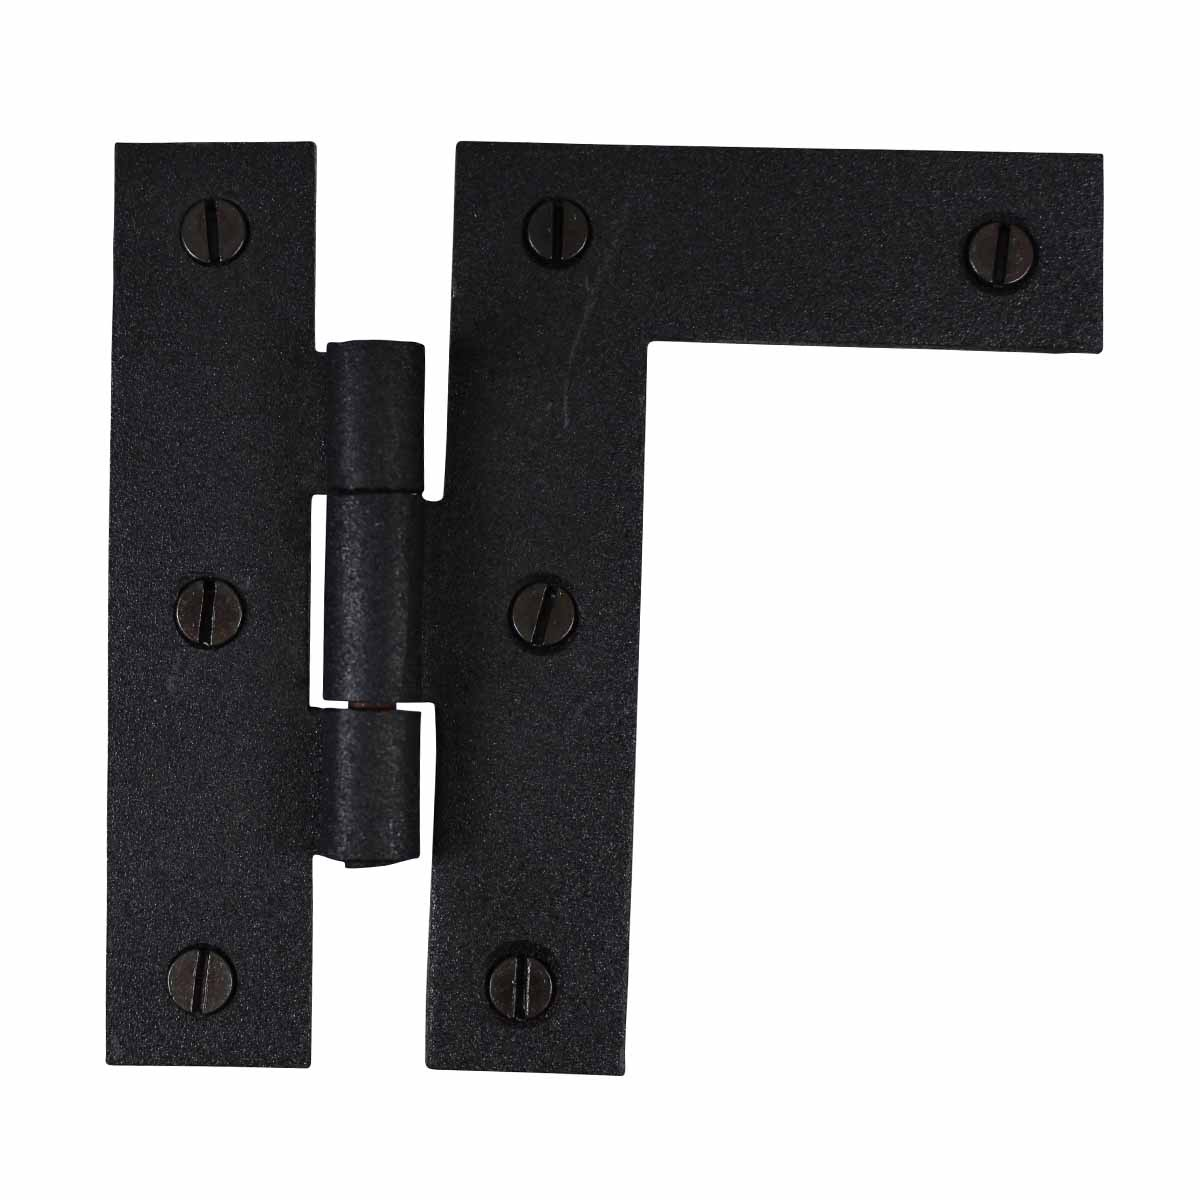 ... U003cPREu003eH L Flush Cabinet Hinge Iron Right Side 3.5inchH ...